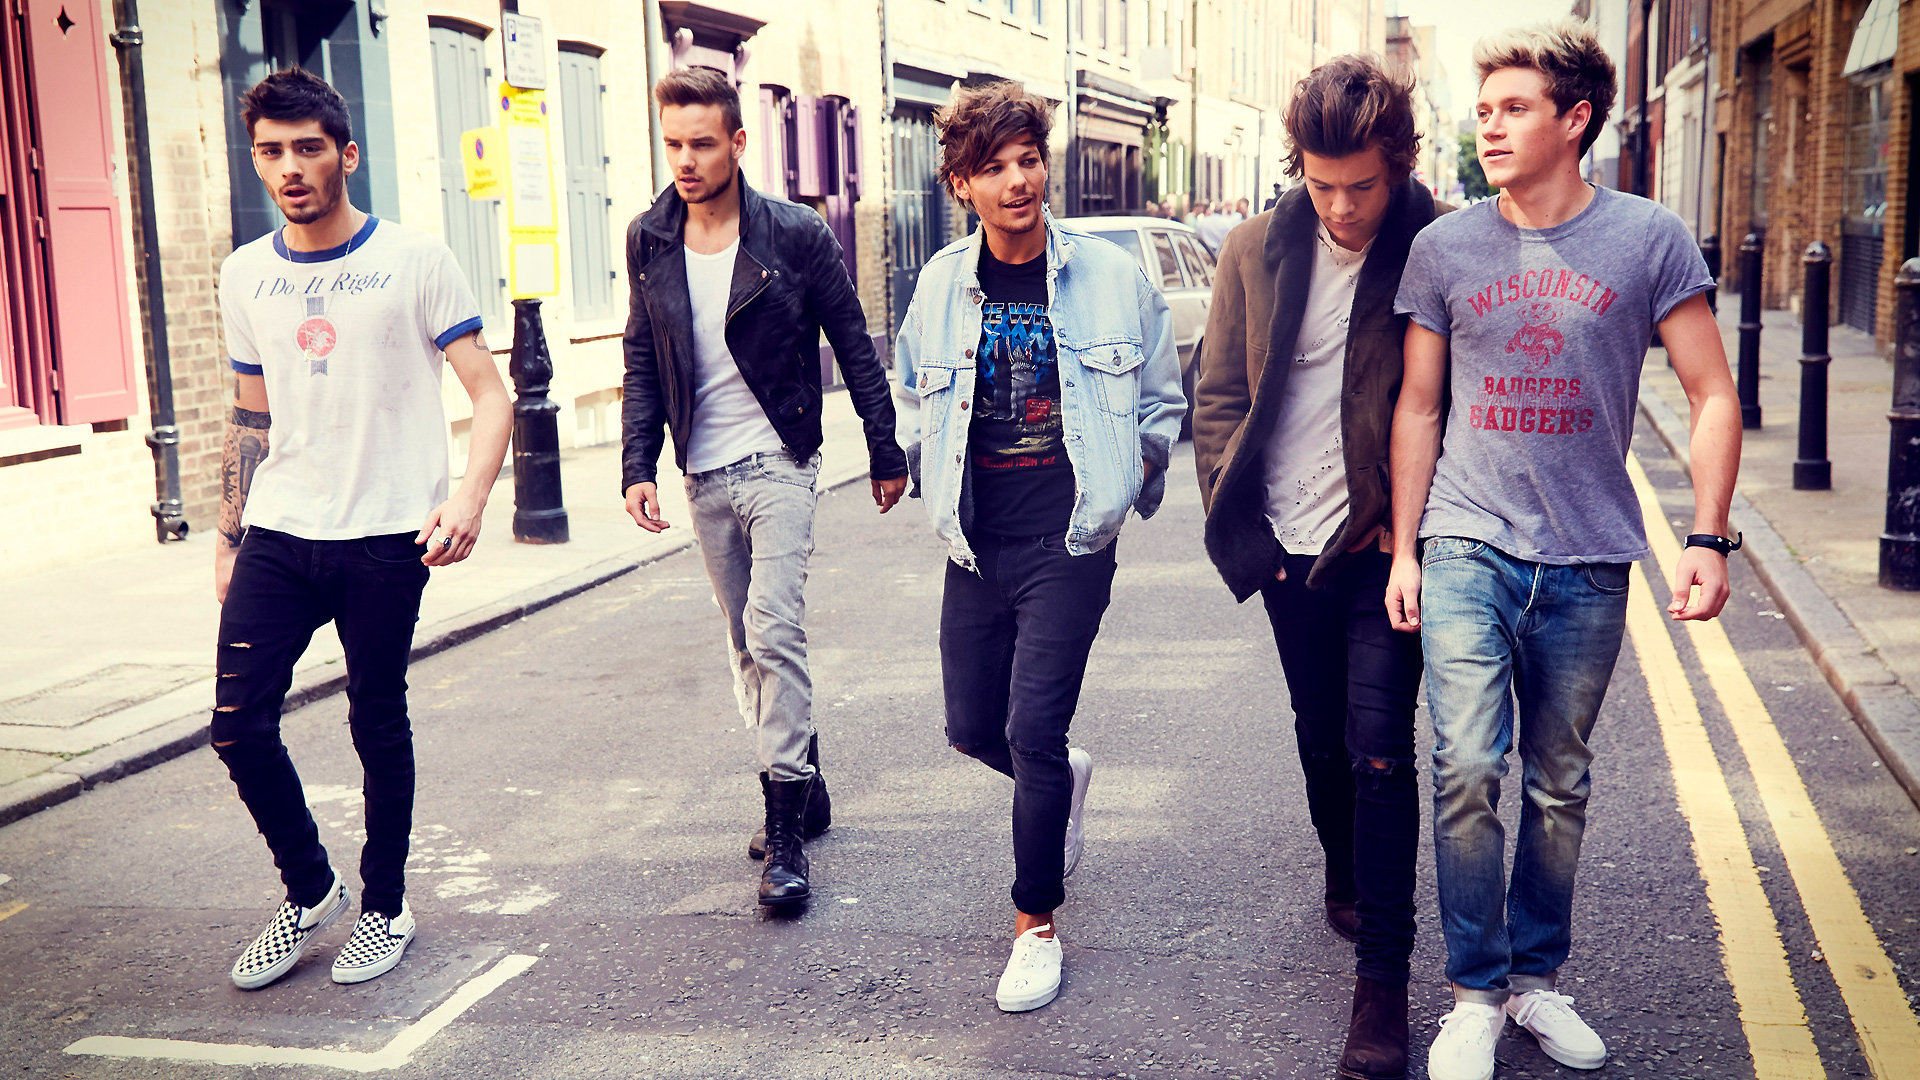 High Resolution One Direction Full Hd 1080p Wallpaper - One Direction Wallpaper Pc - HD Wallpaper